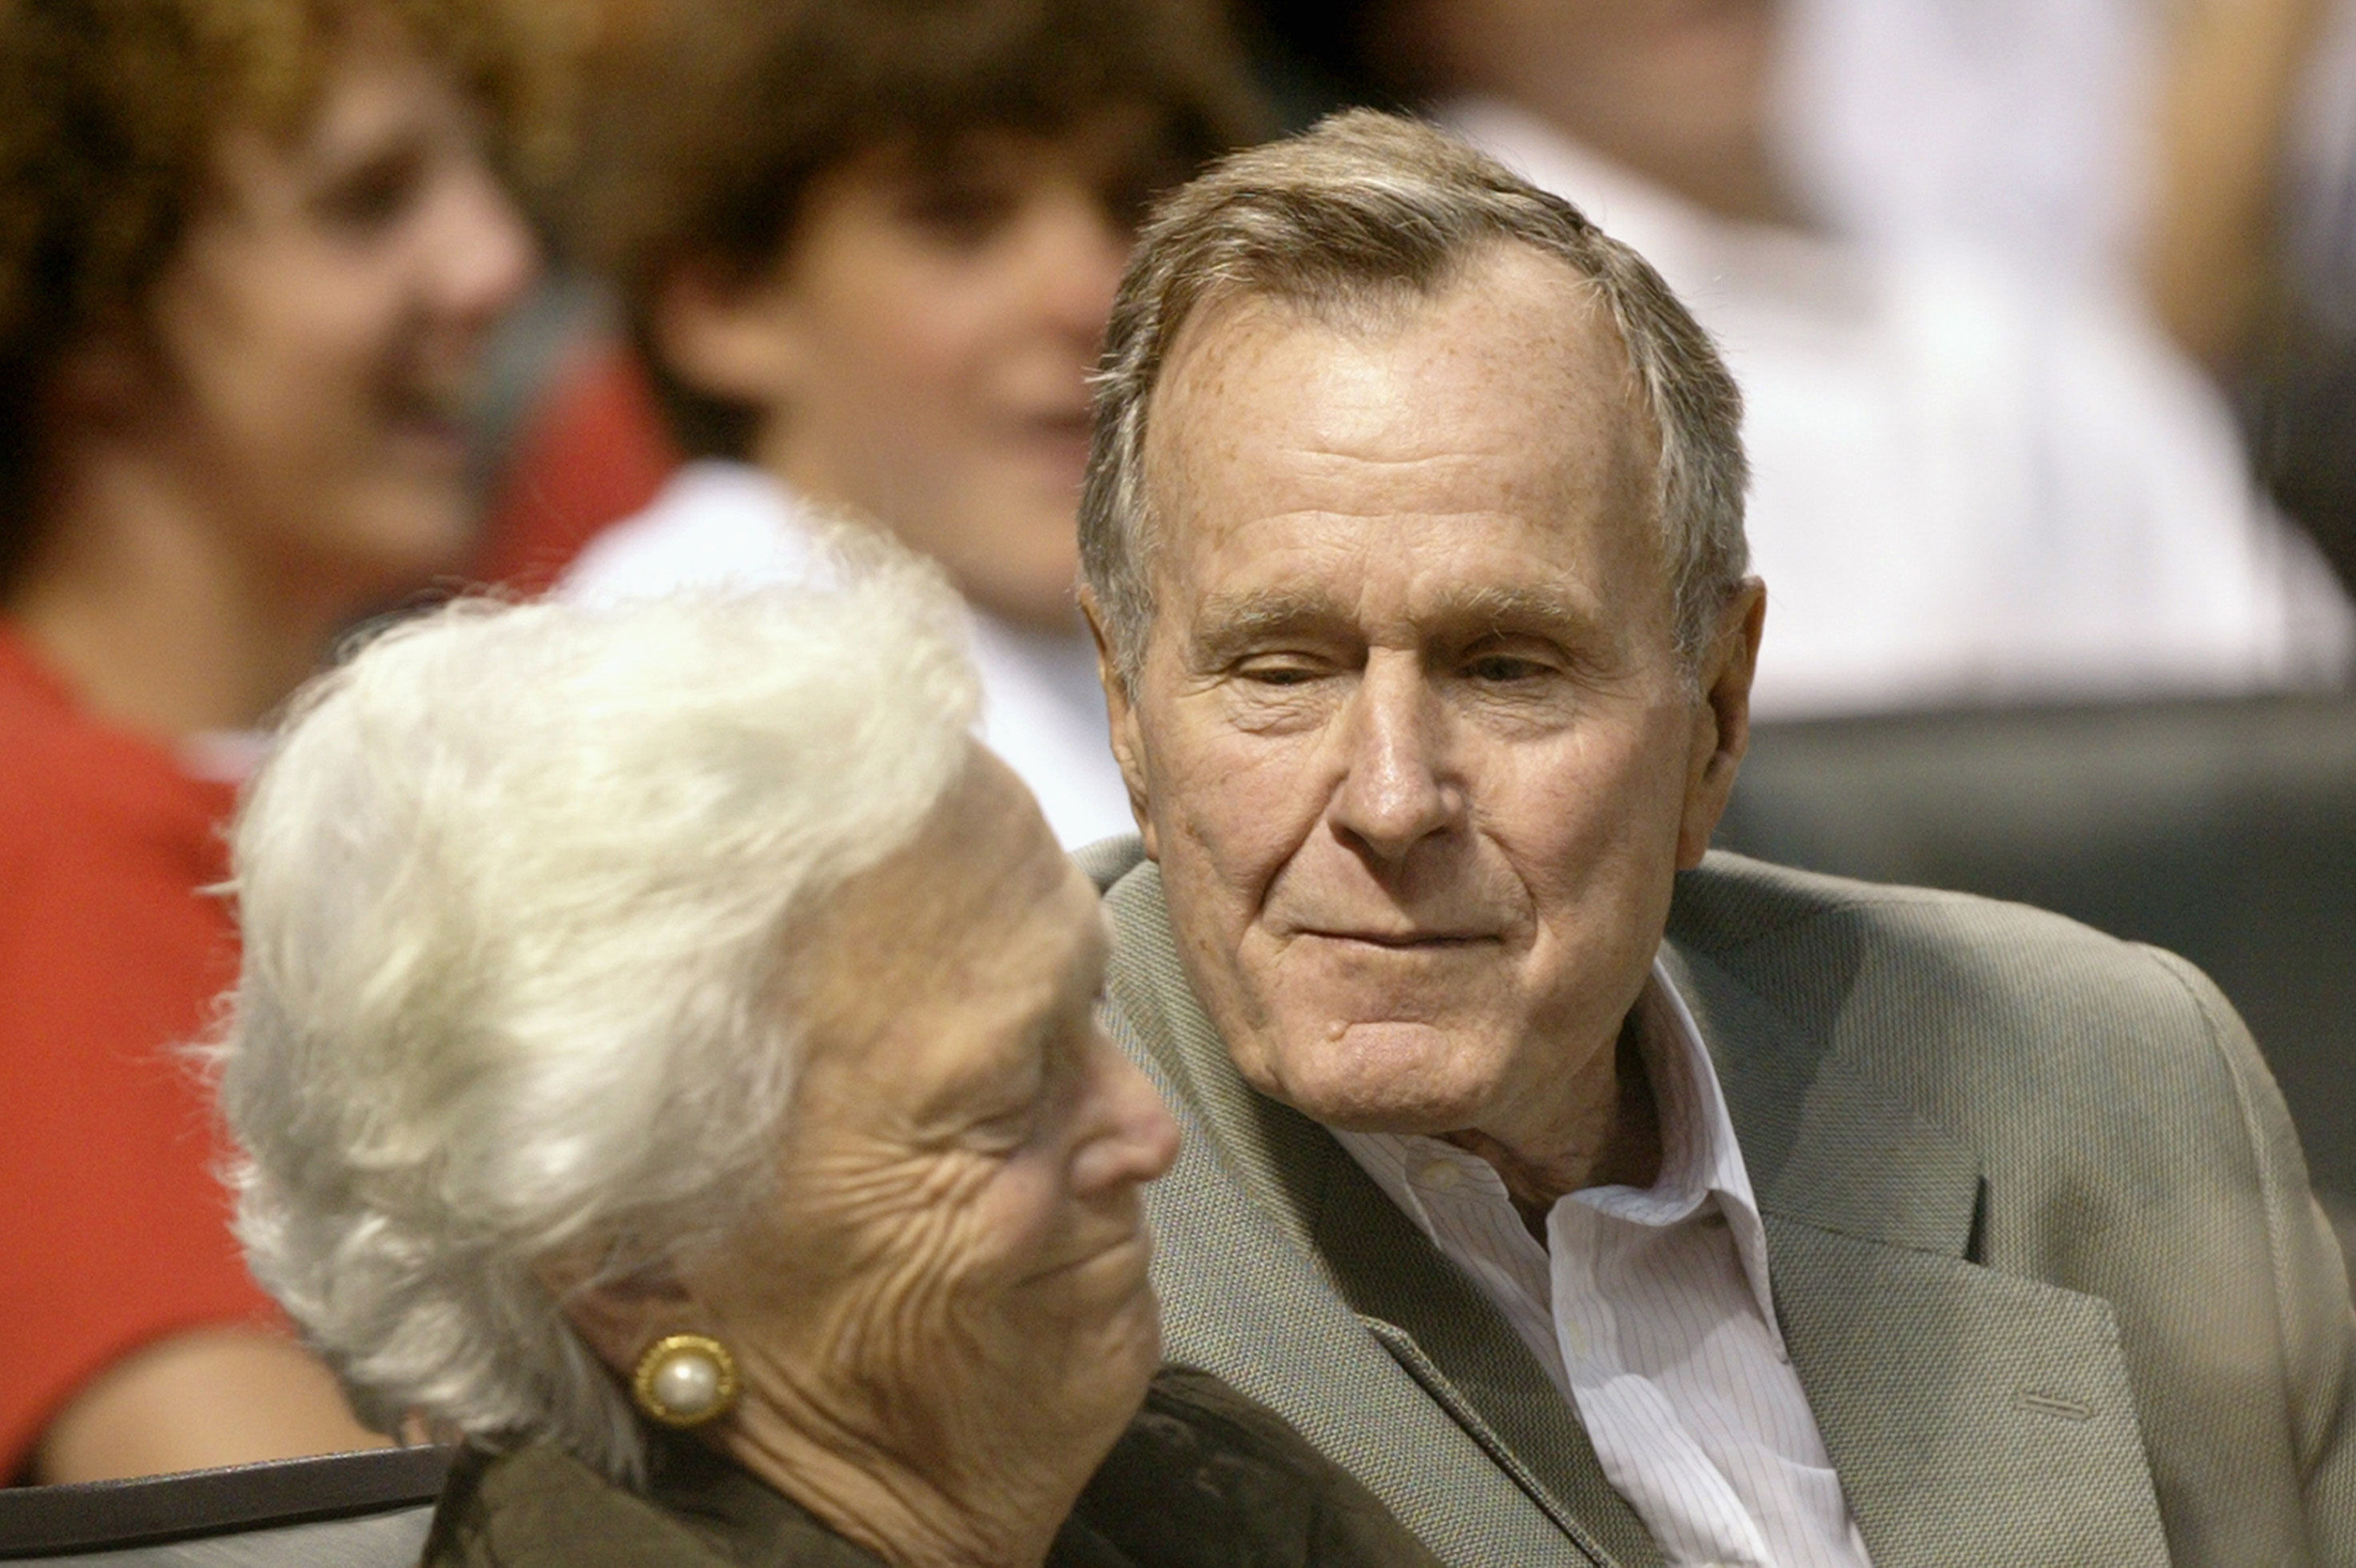 WATCH: George Bush Reportedly Said This to Barbara Every Night During Their 73 Years of Marriage